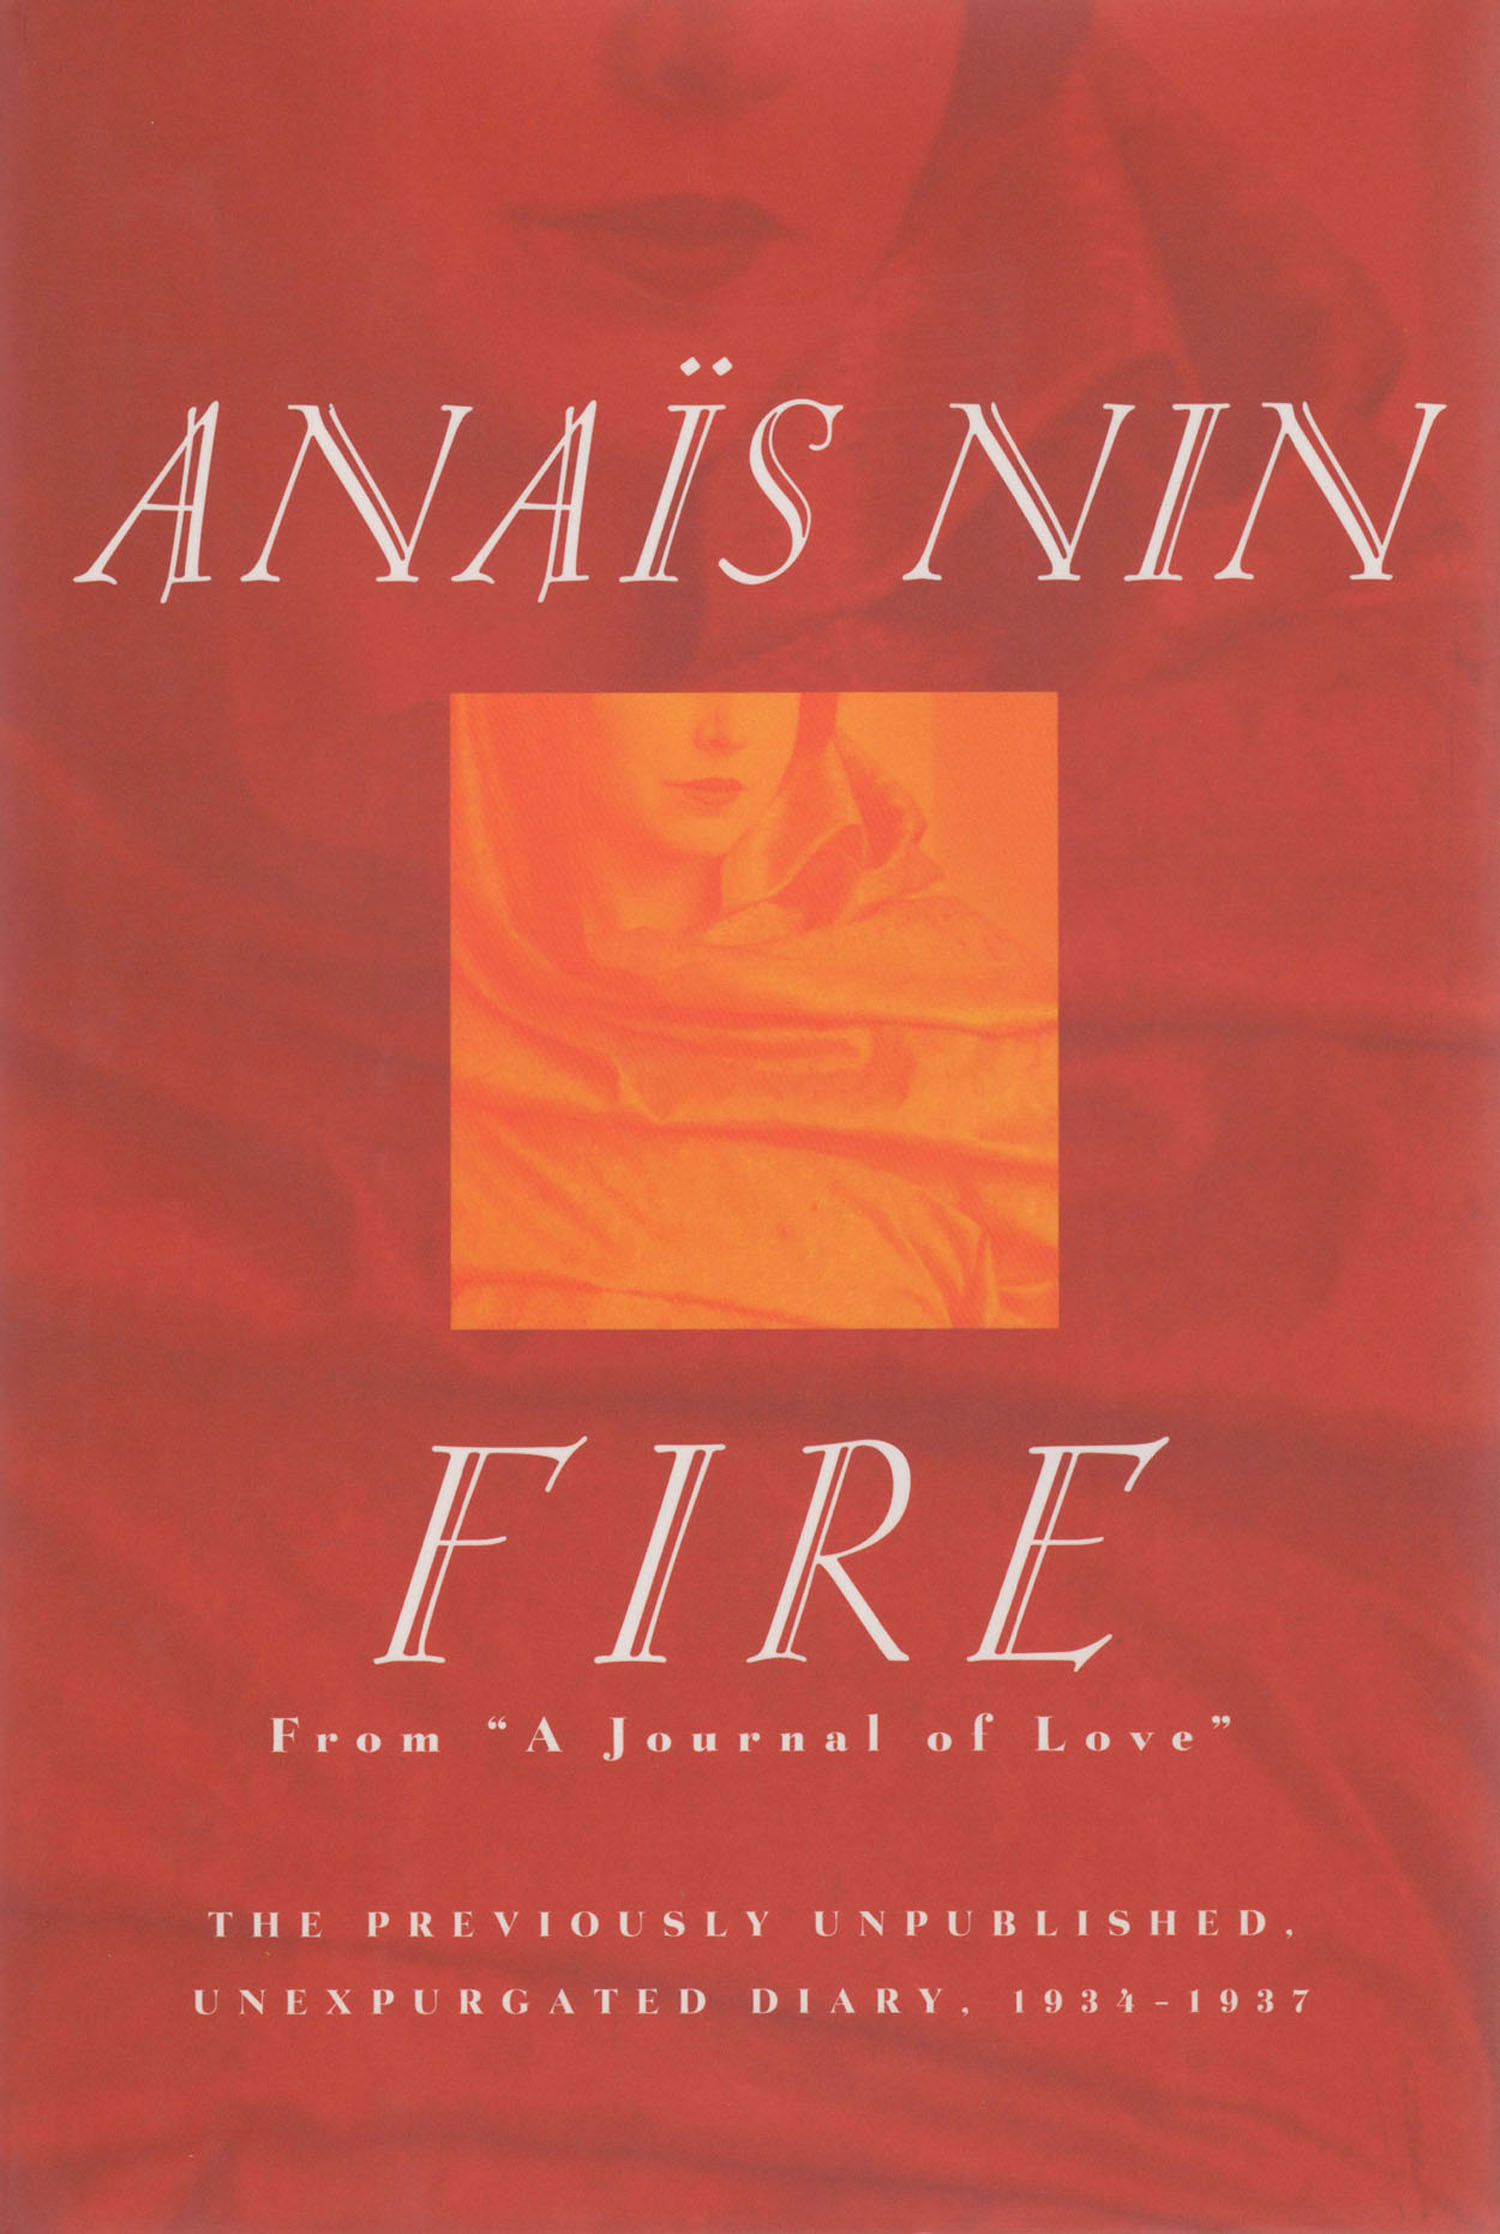 Fire: The Unexpurgated Diary of Anais Nin 1934-1937